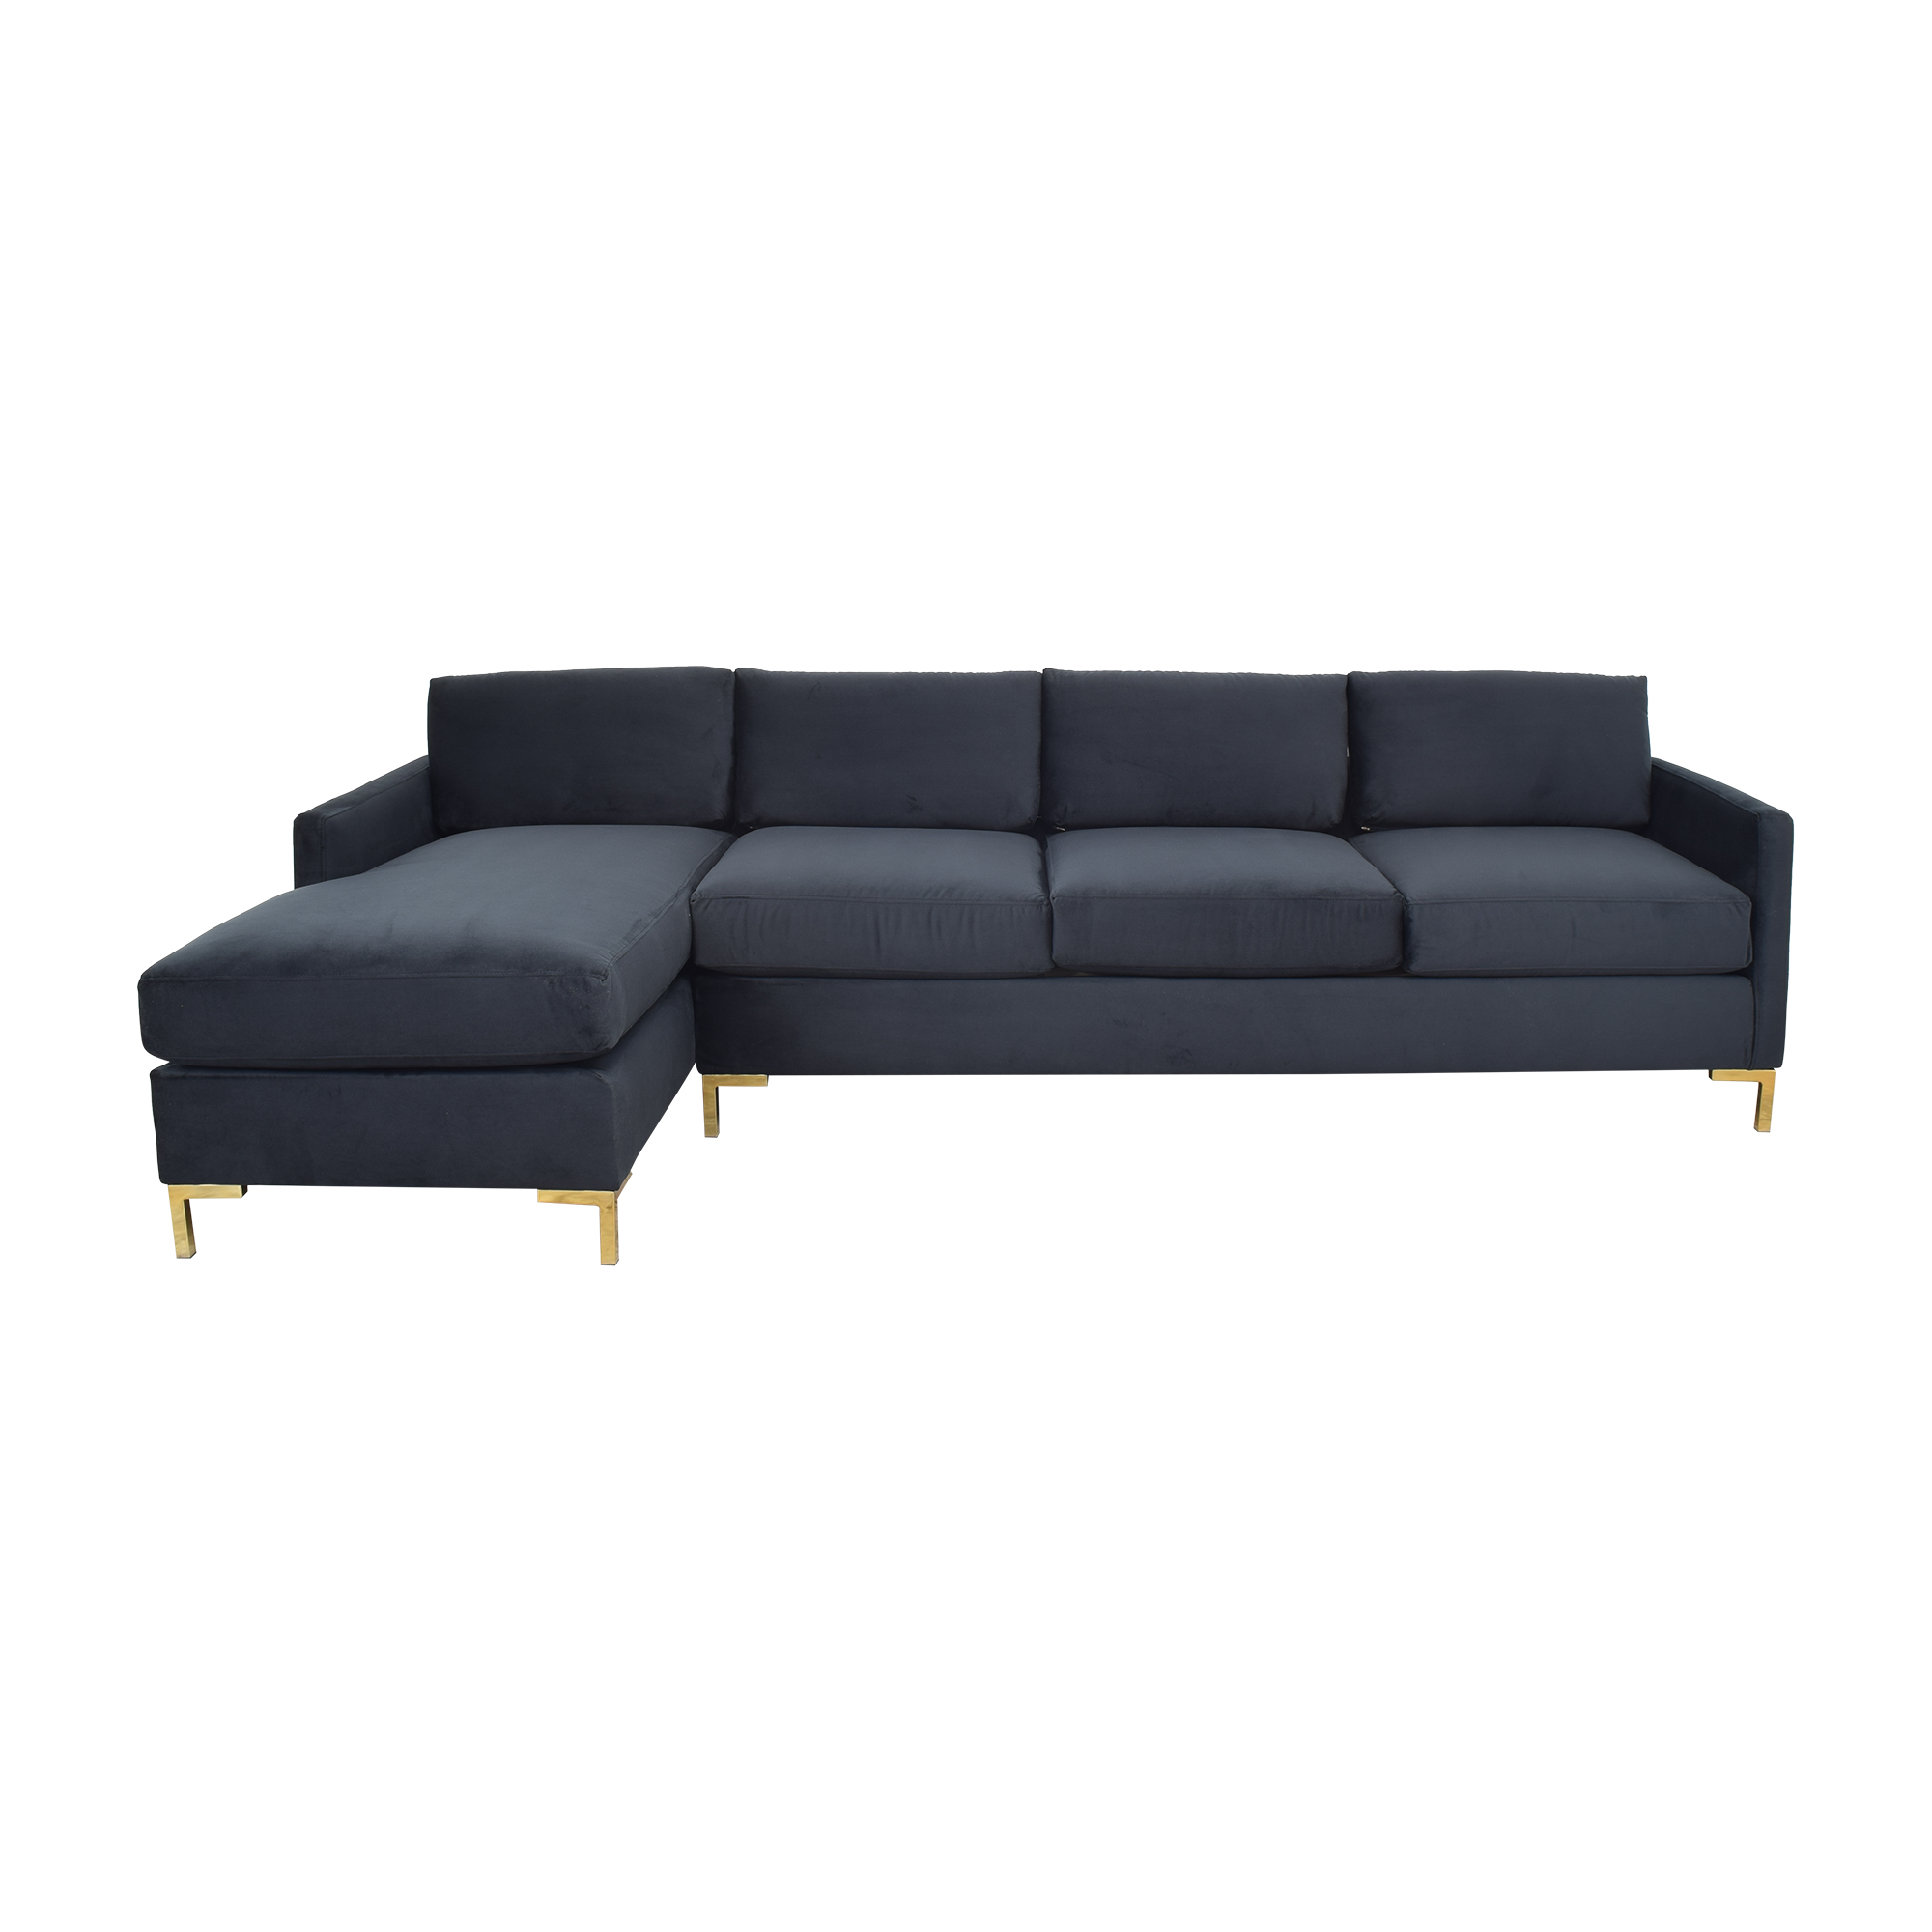 KFI KFI Modern Sectional Sofa on sale